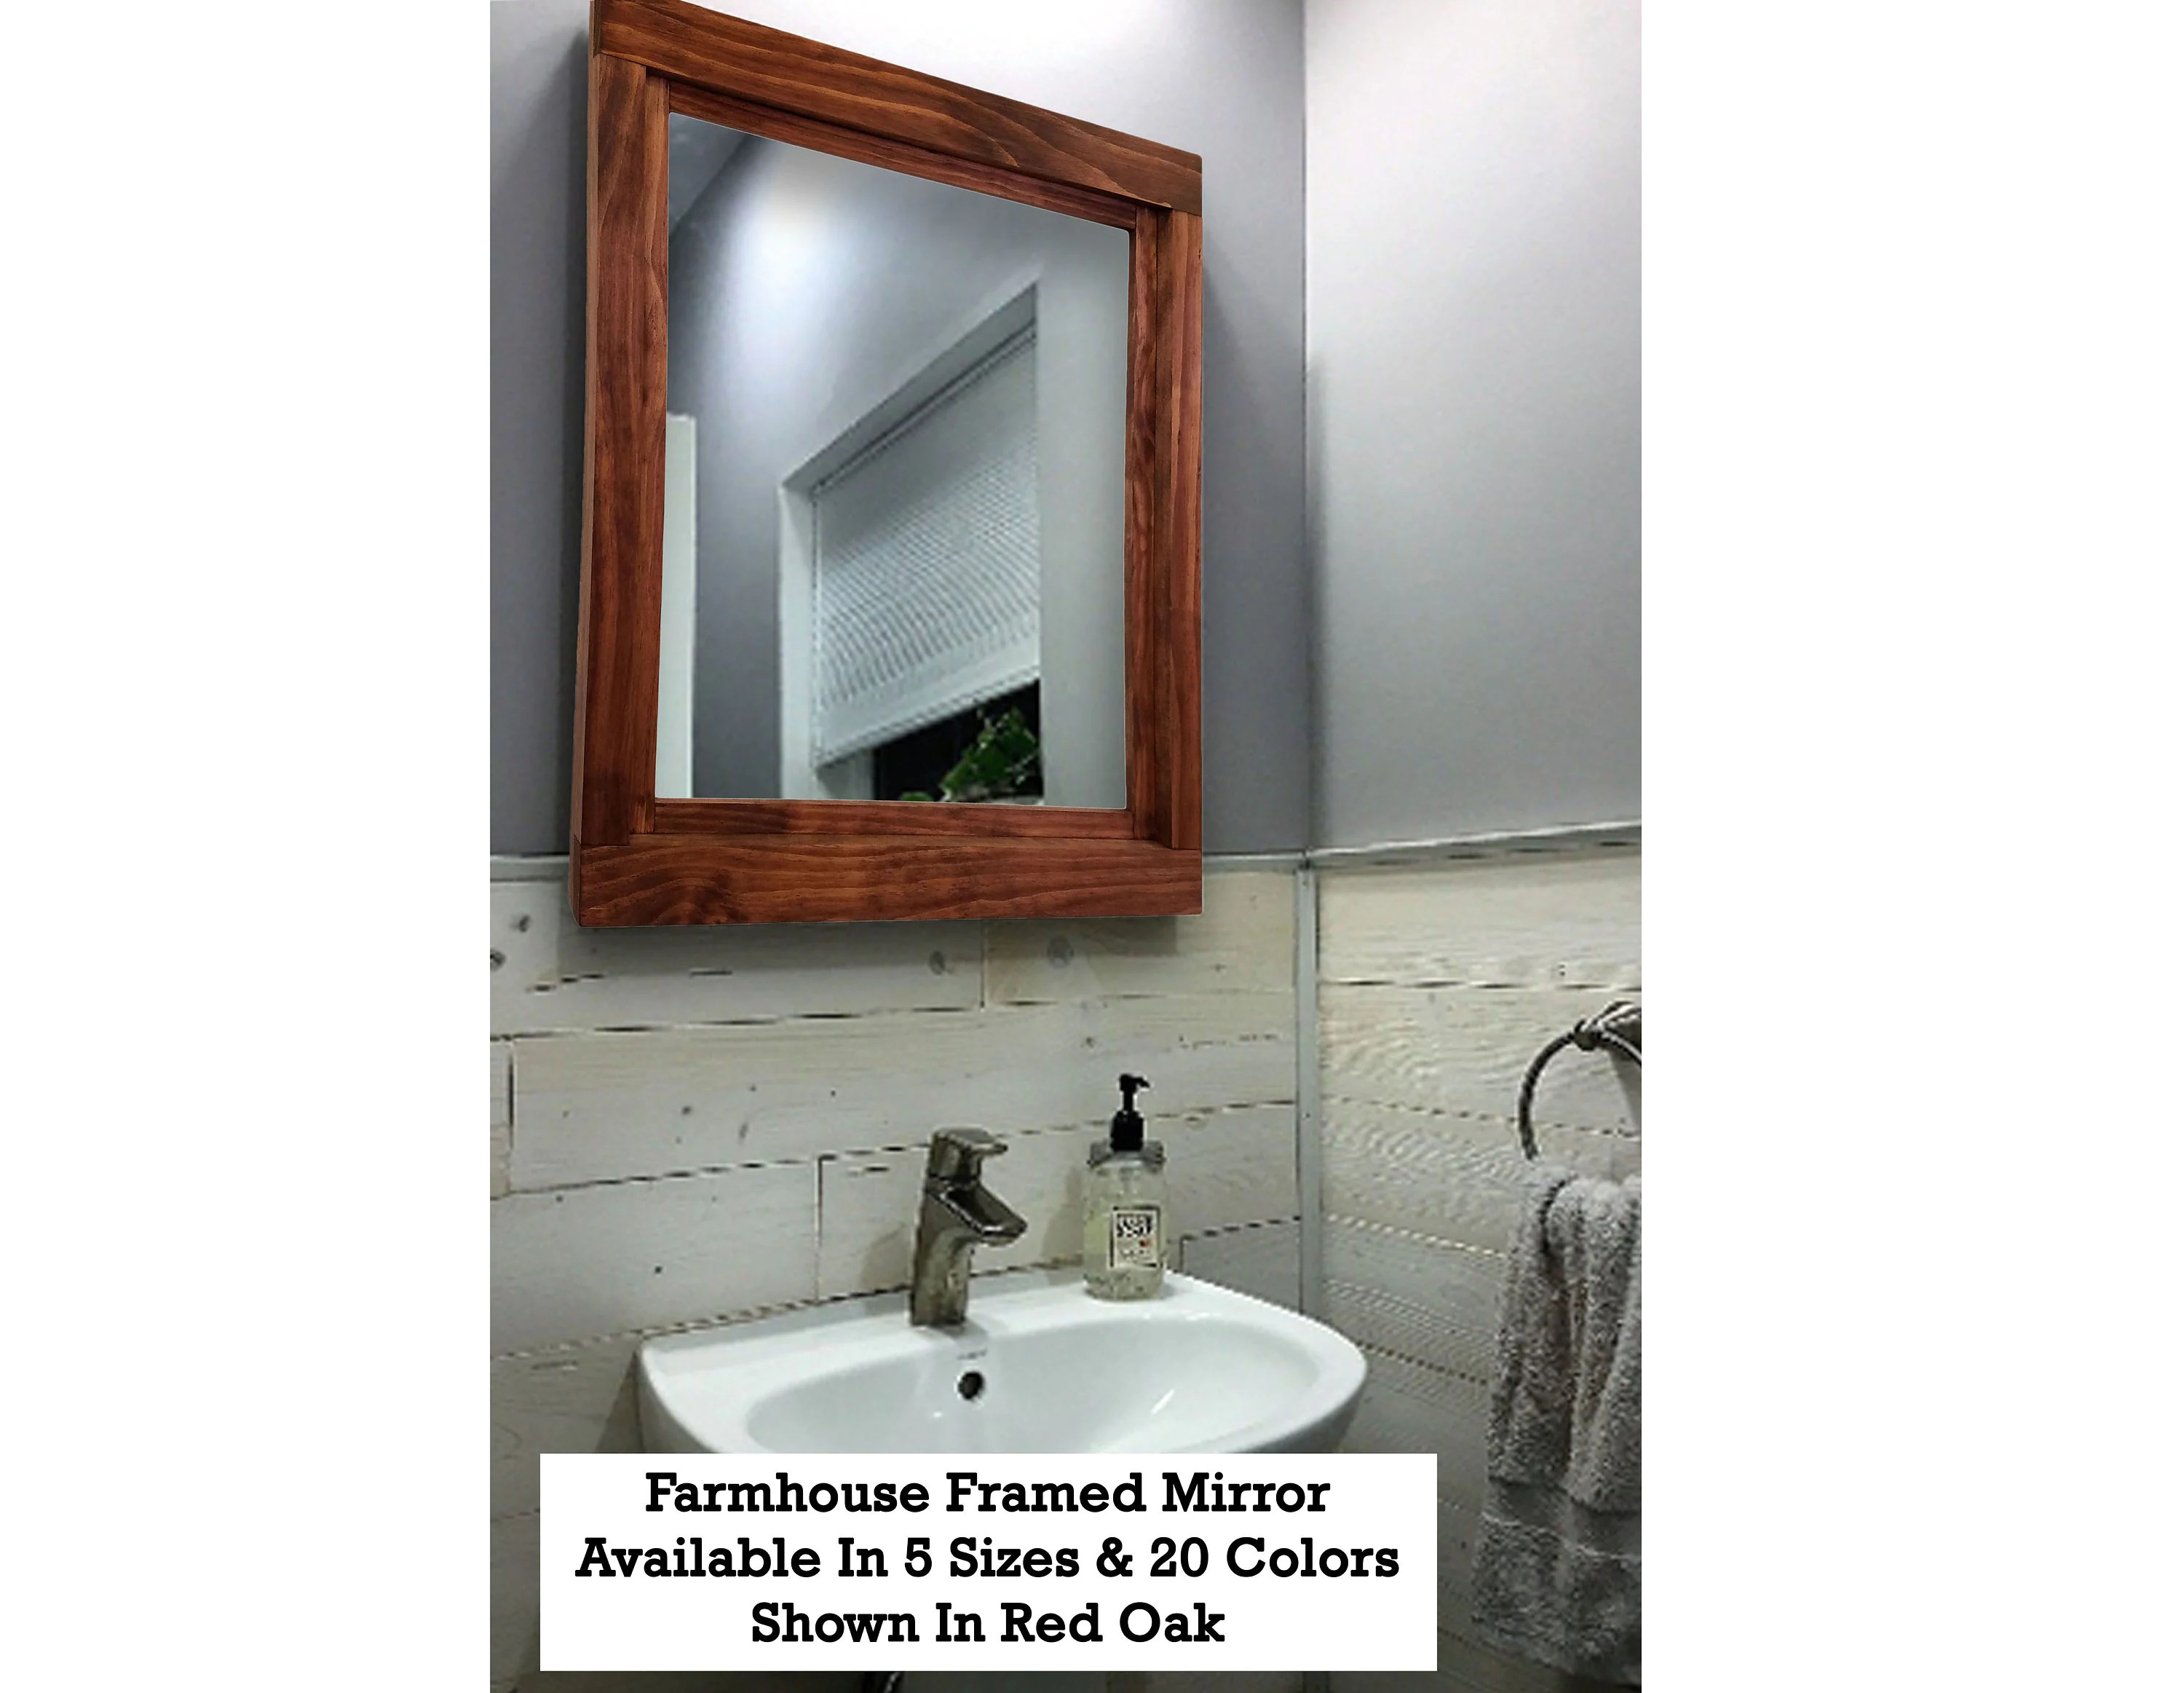 Large Wall Mirrors Farmhouse Mirror Wood Frame Mirror Large Wall Mirror Bathroom Mirror Vanity Mirror Wall Mirrors Red Oak 20 Colors